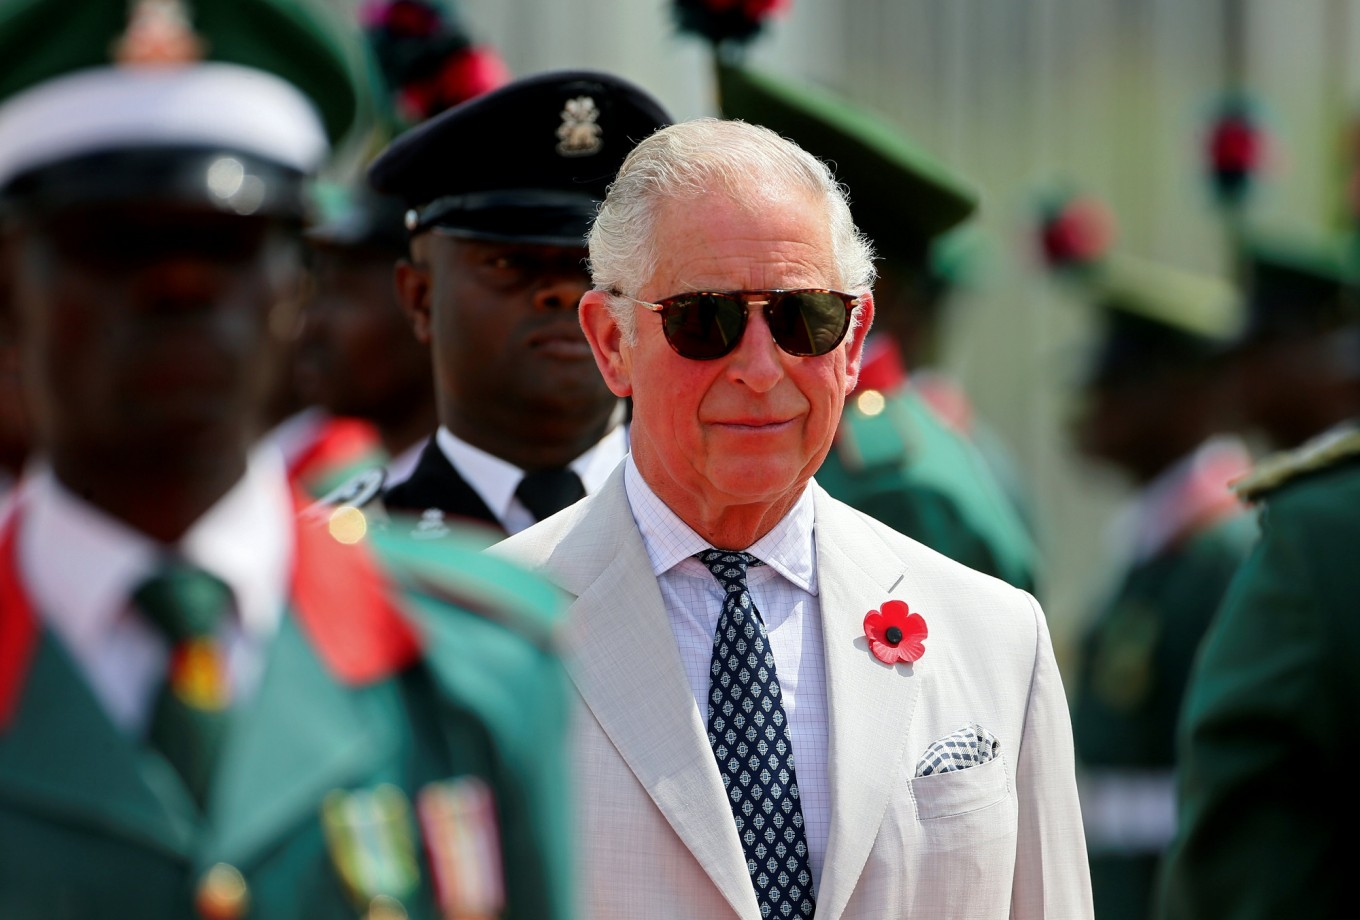 Prince Charles out of virus isolation: royal officials